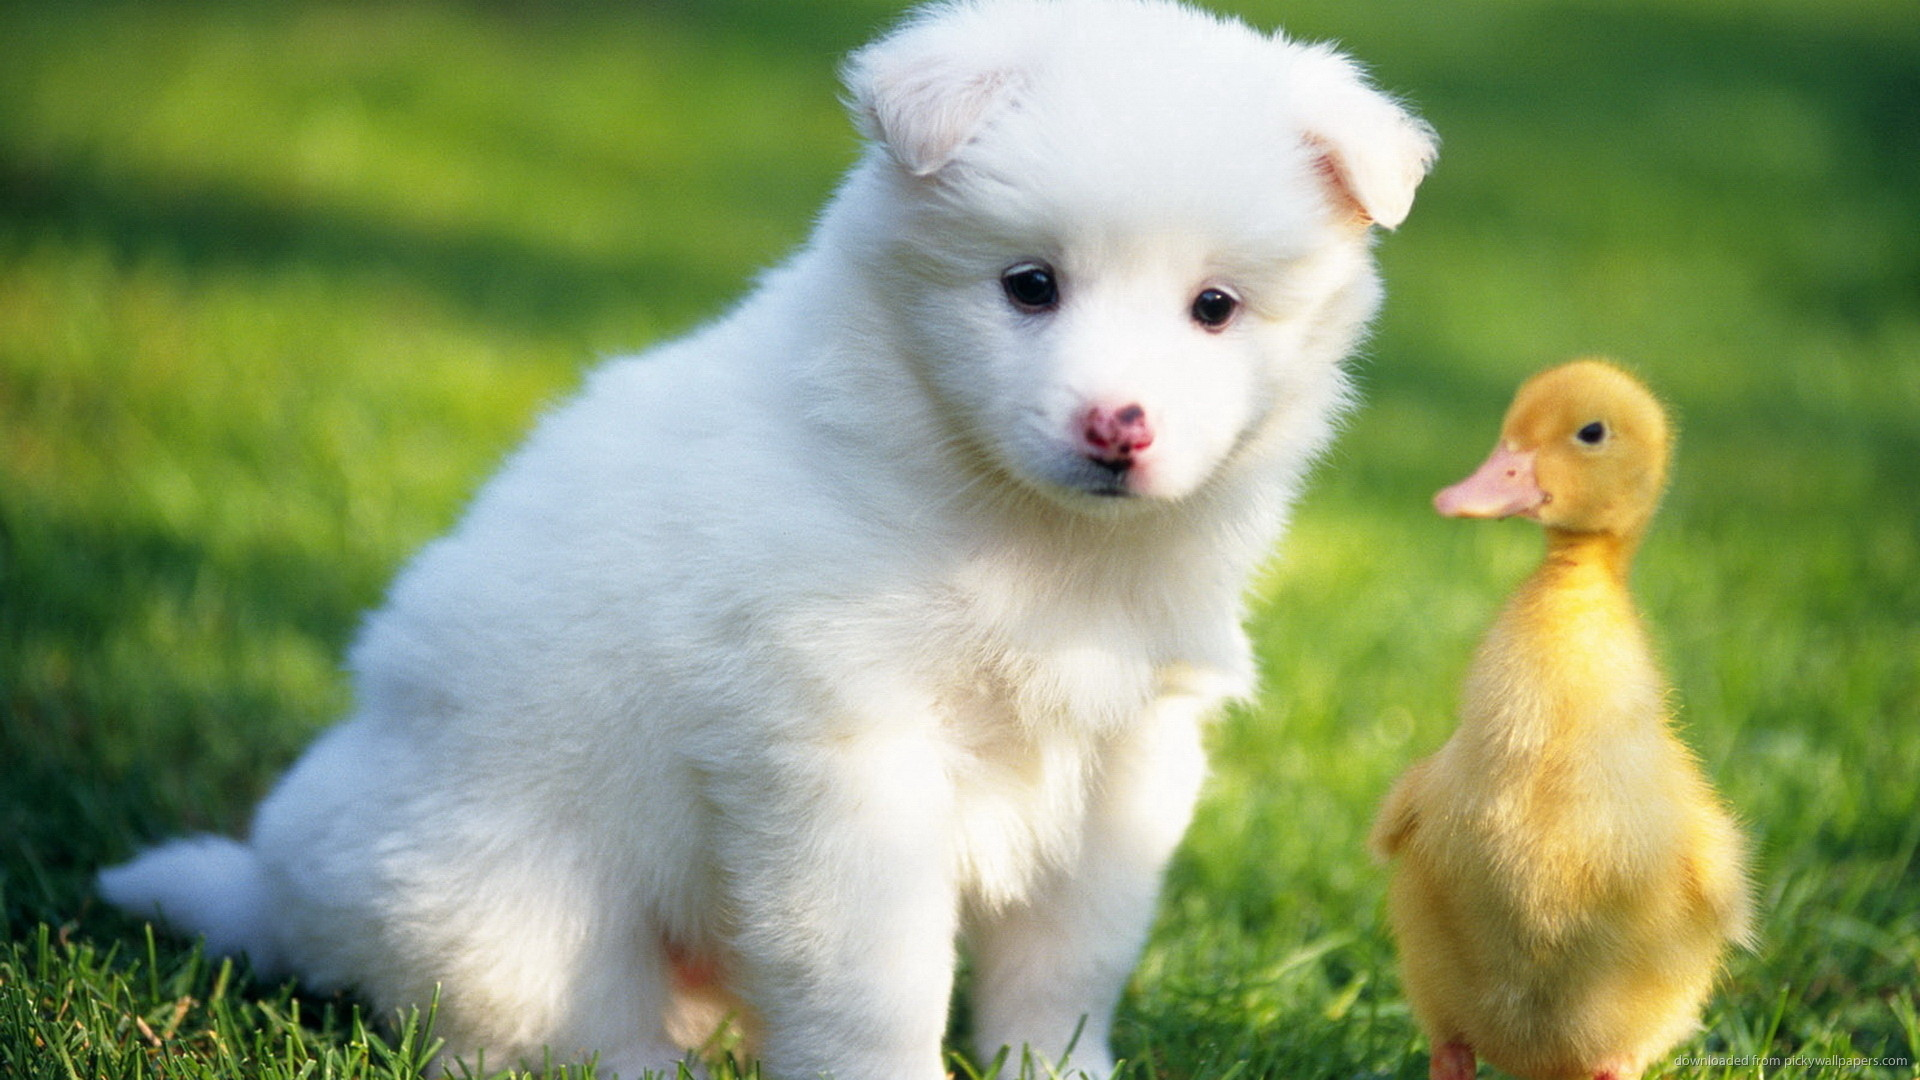 1920x1080 Puppy and a duckling for